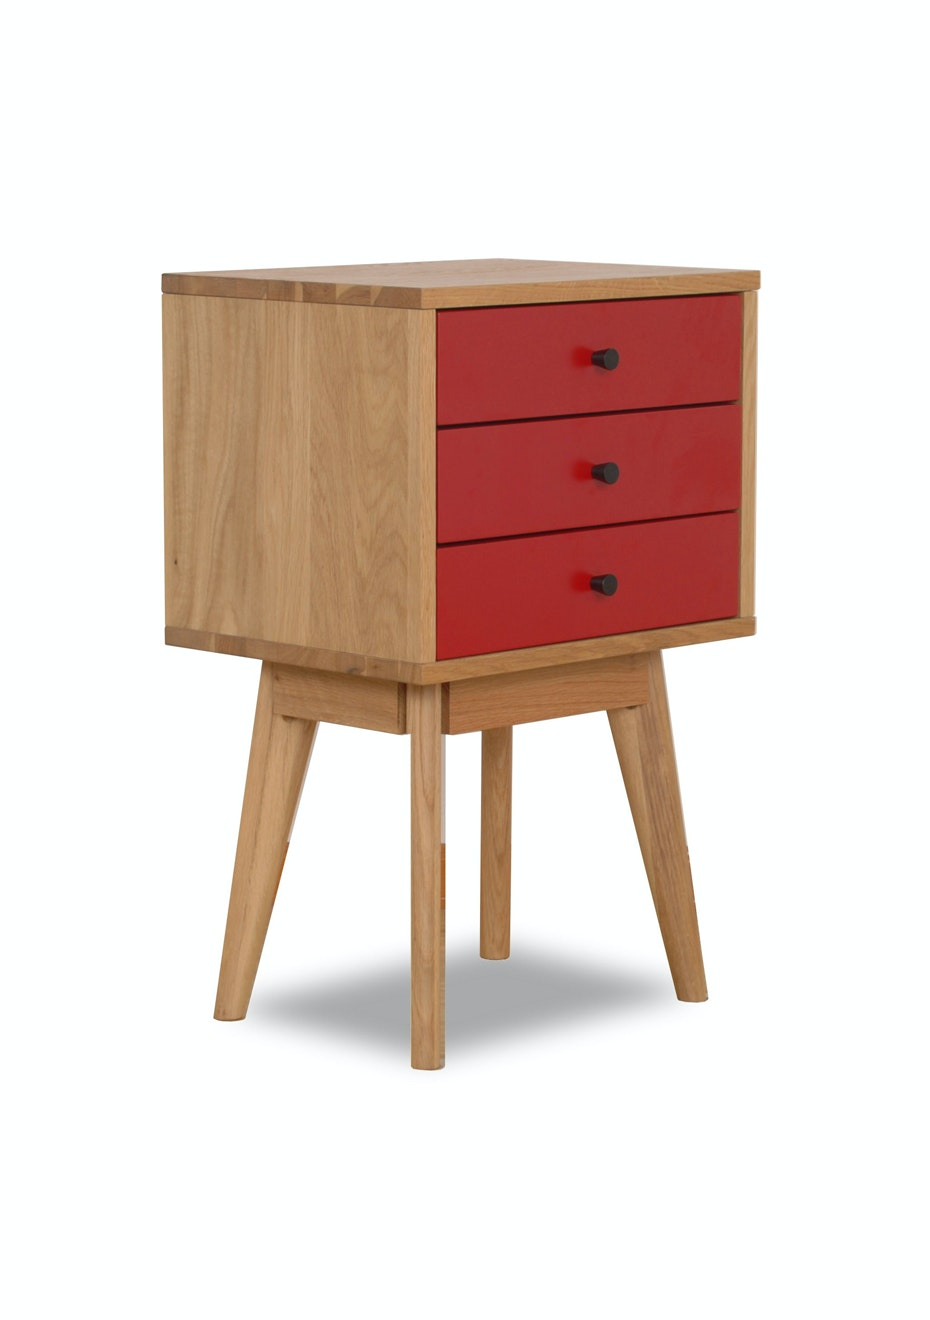 Furniture By Design - Radius 3 Tower- Red and Oak